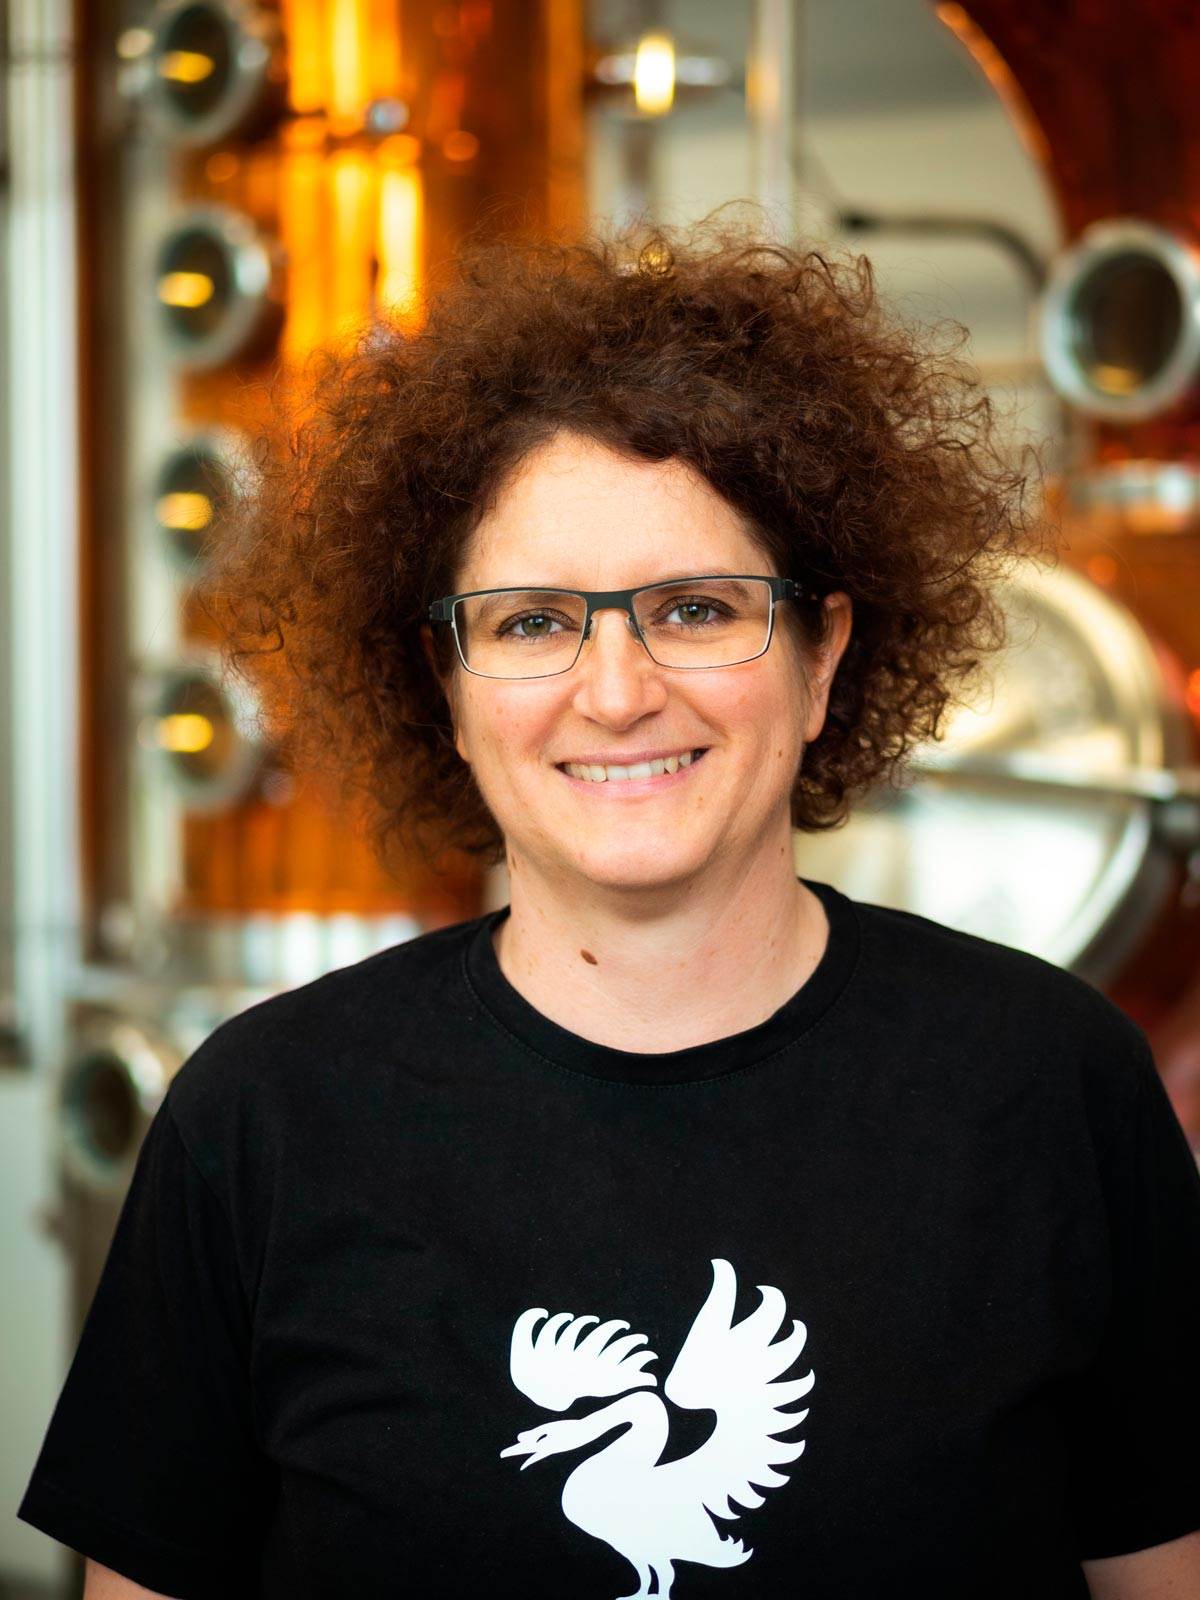 Portrait photo of DI Dr. Carmen Krauss, CEO of Distillery Krauss